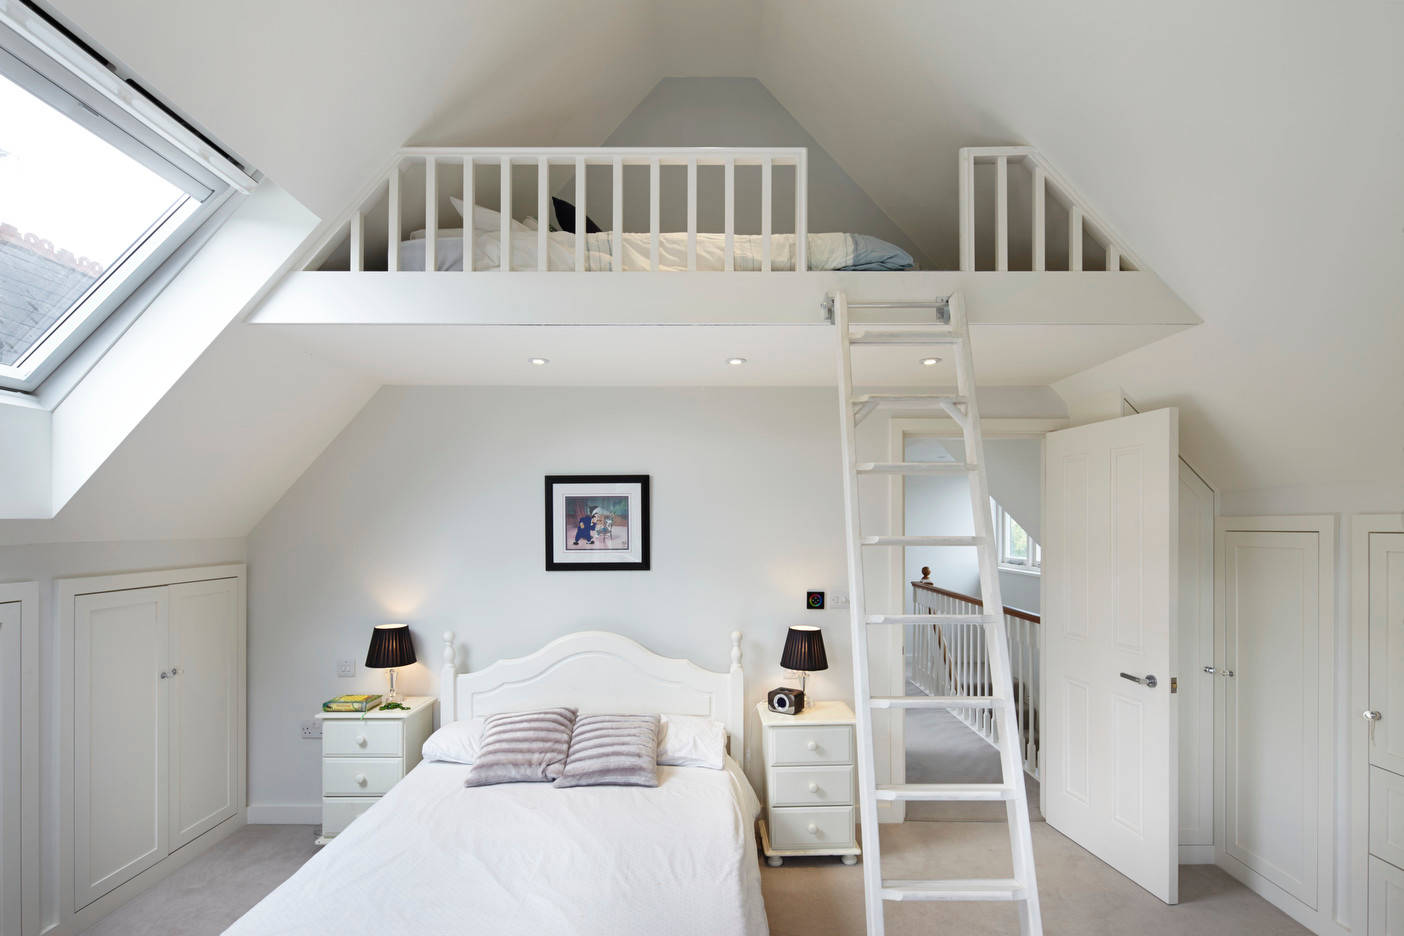 Add another level bedroom